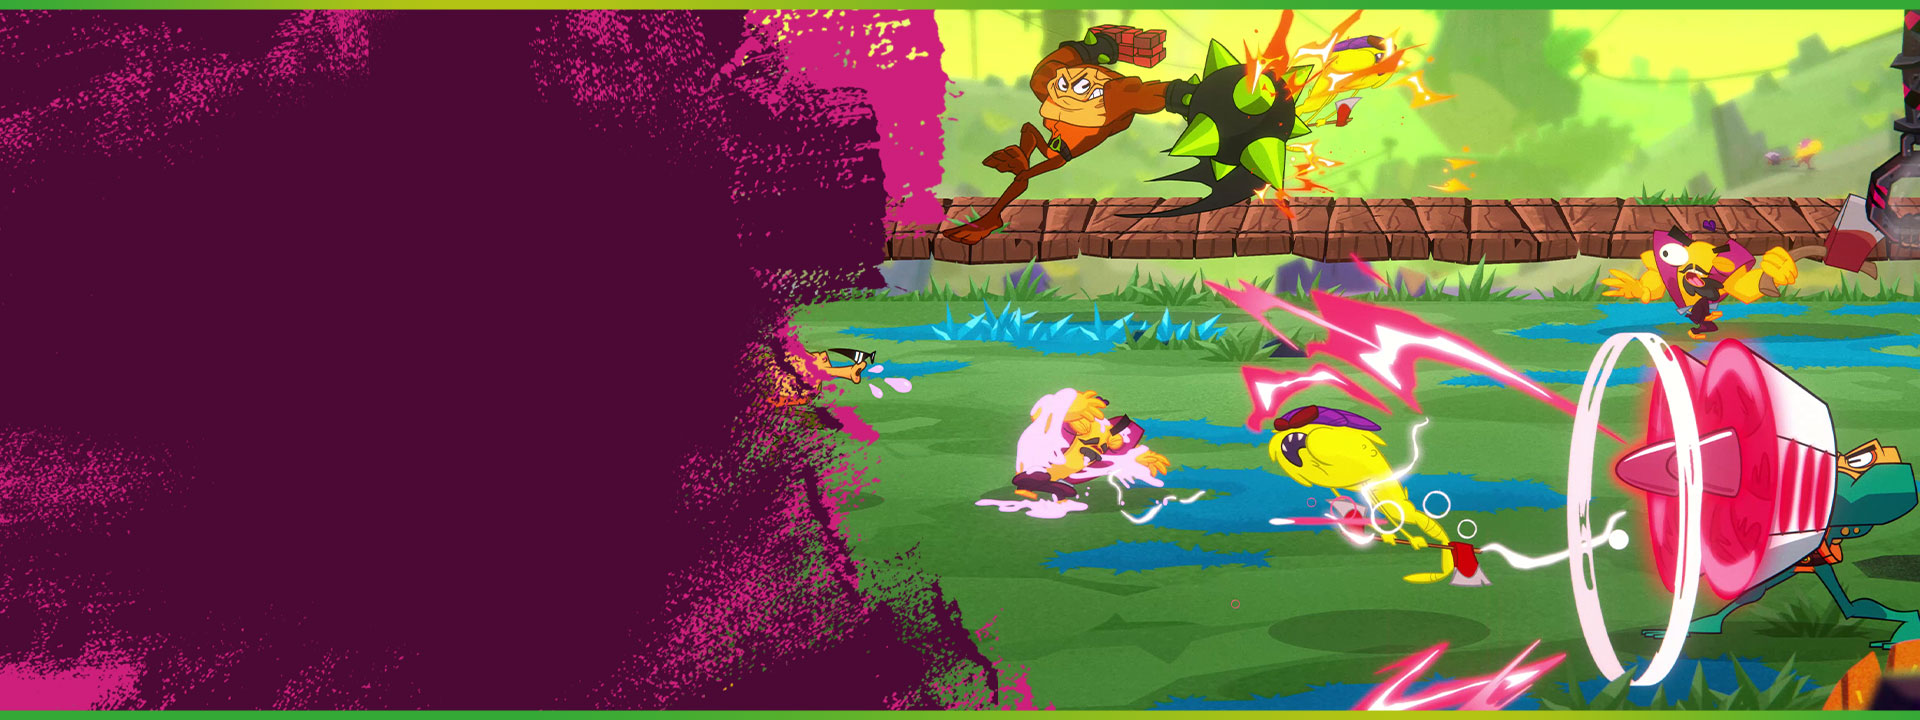 The Battletoads use a Morph Attack in a fight.